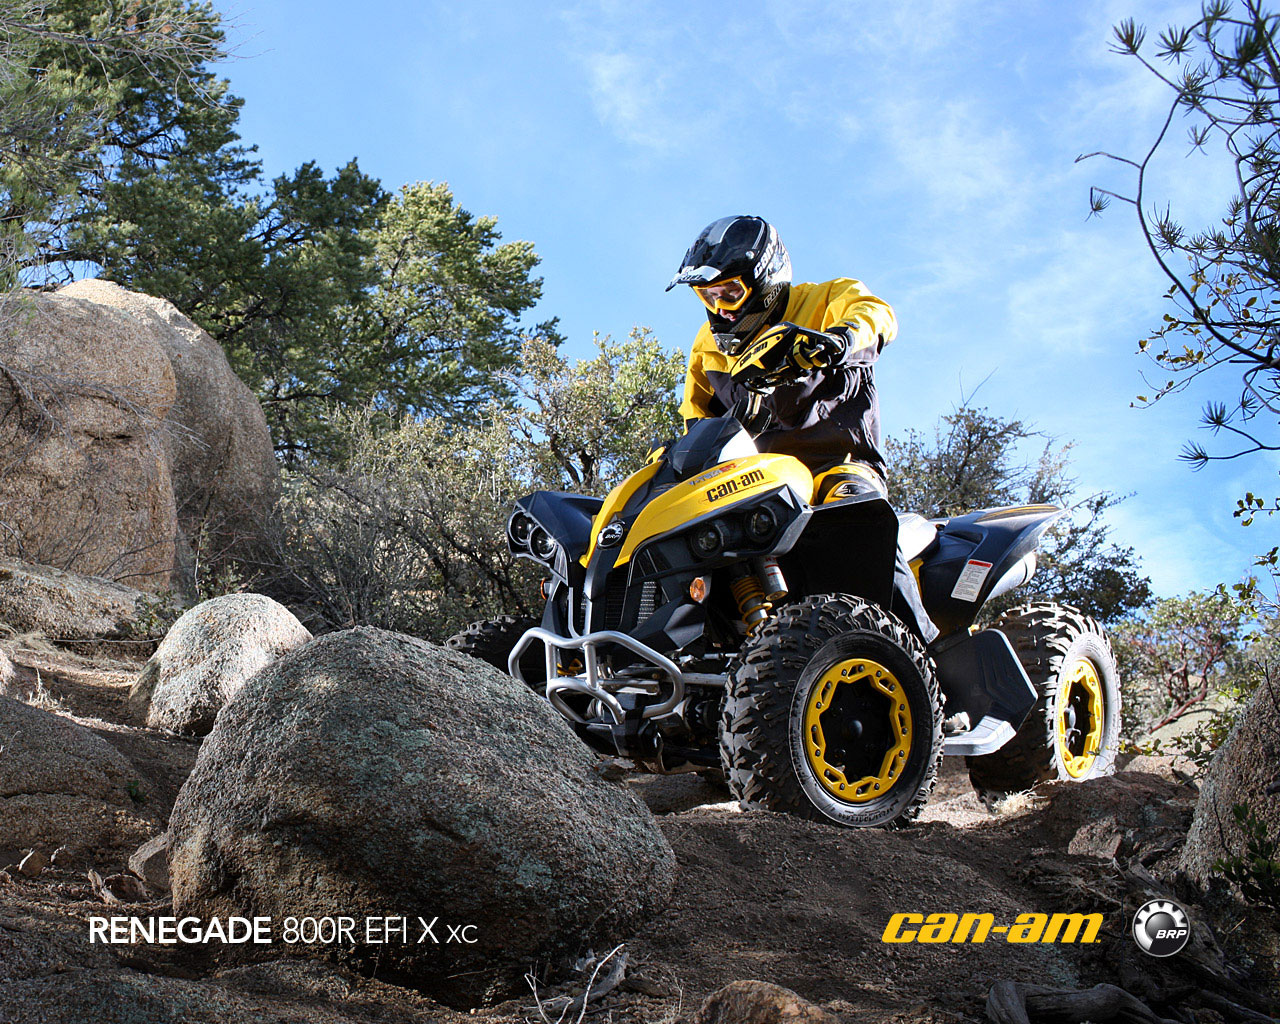 can-am renegade 800r x xc #2